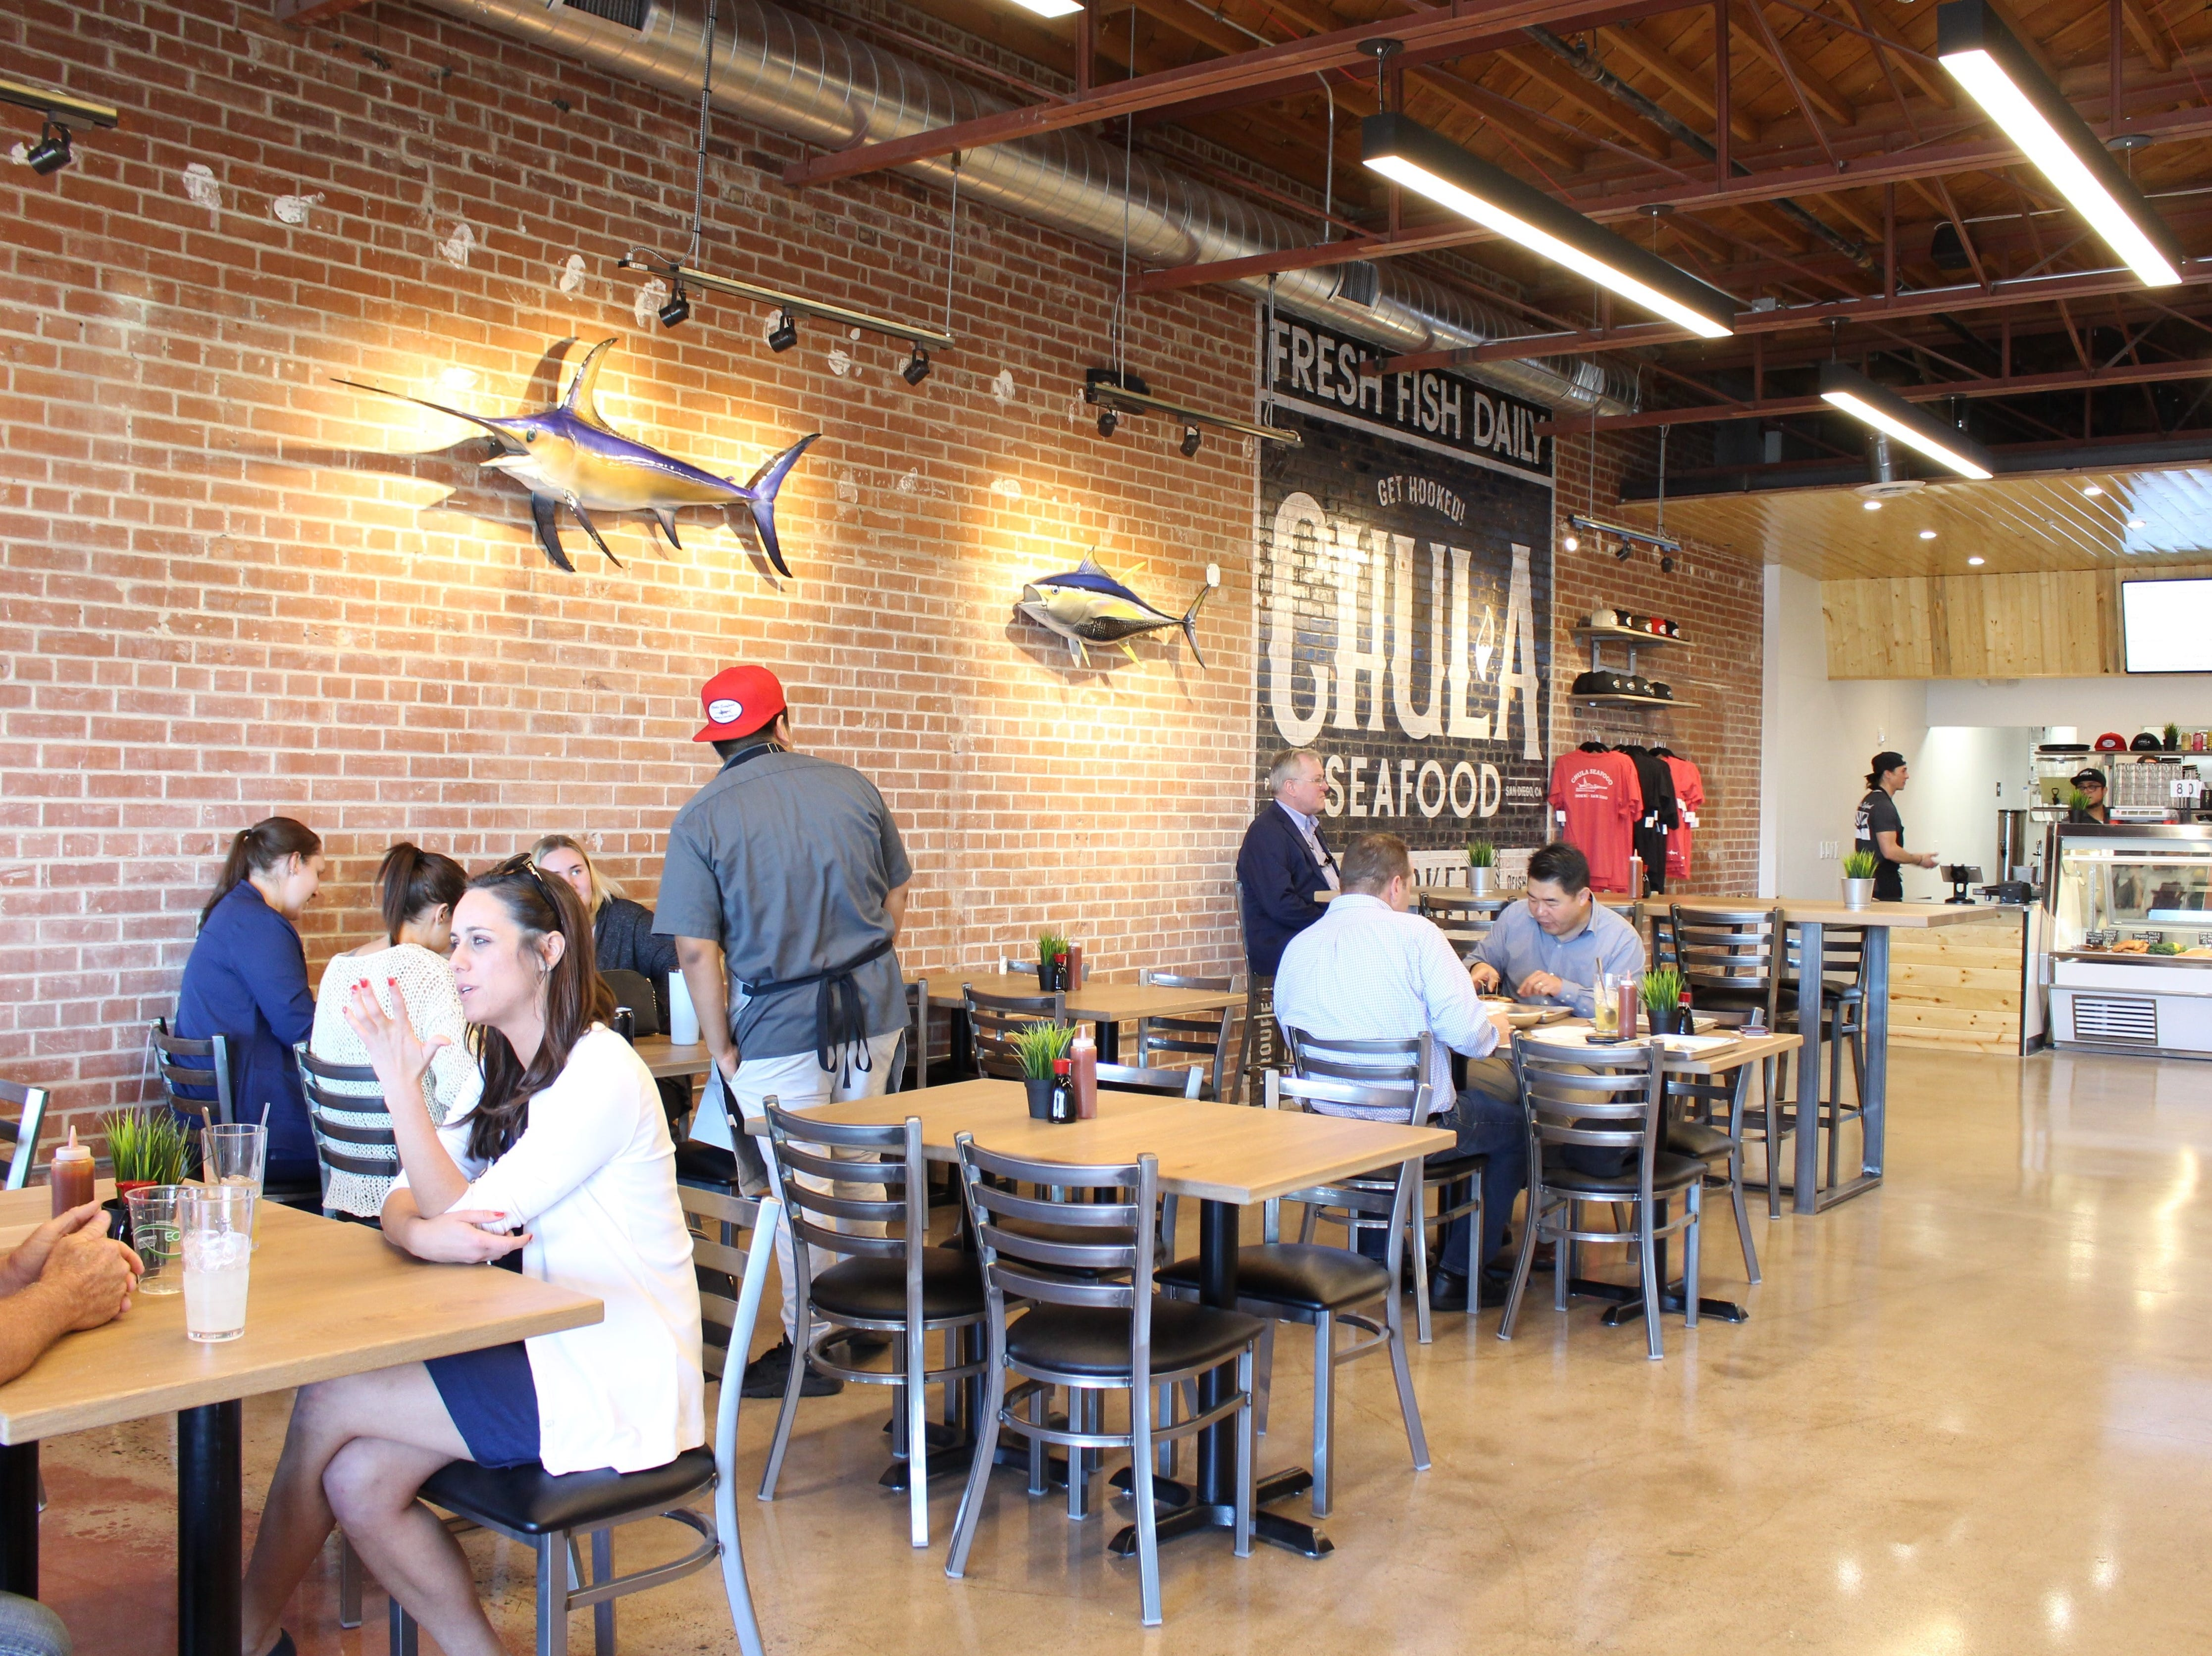 Chula Seafood at Uptown Plaza offers a bright dining area where customers can enjoy lunch and dinner served with a small selection of beer and wine.